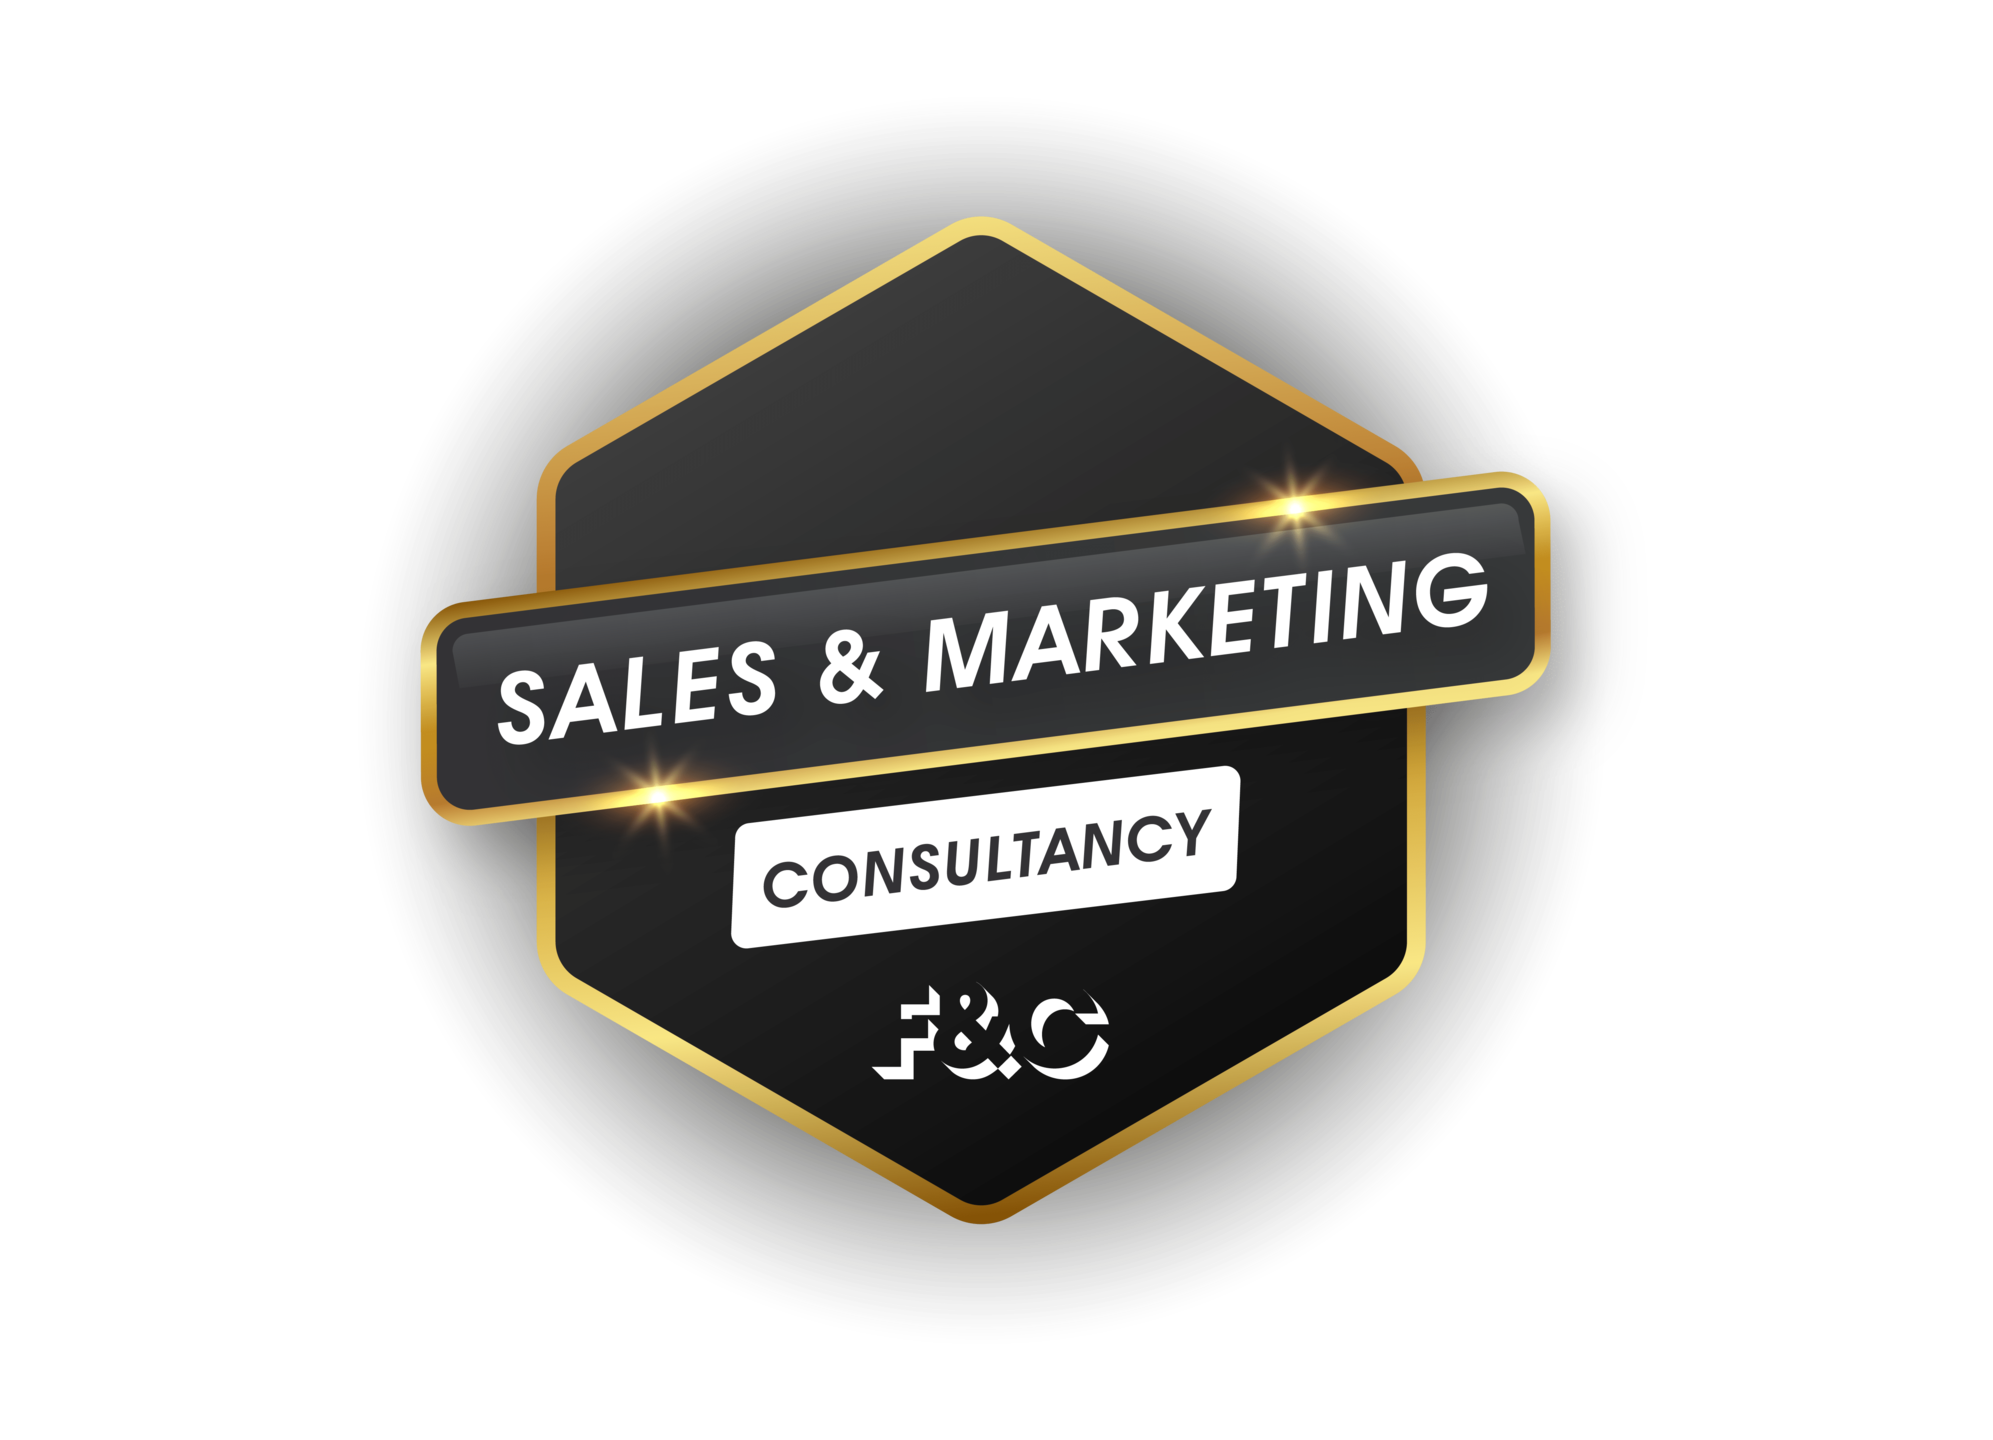 Sales and Marketing Consultancy for Video Production Companies - Video Content Strategy Services - Film and Content - F&C